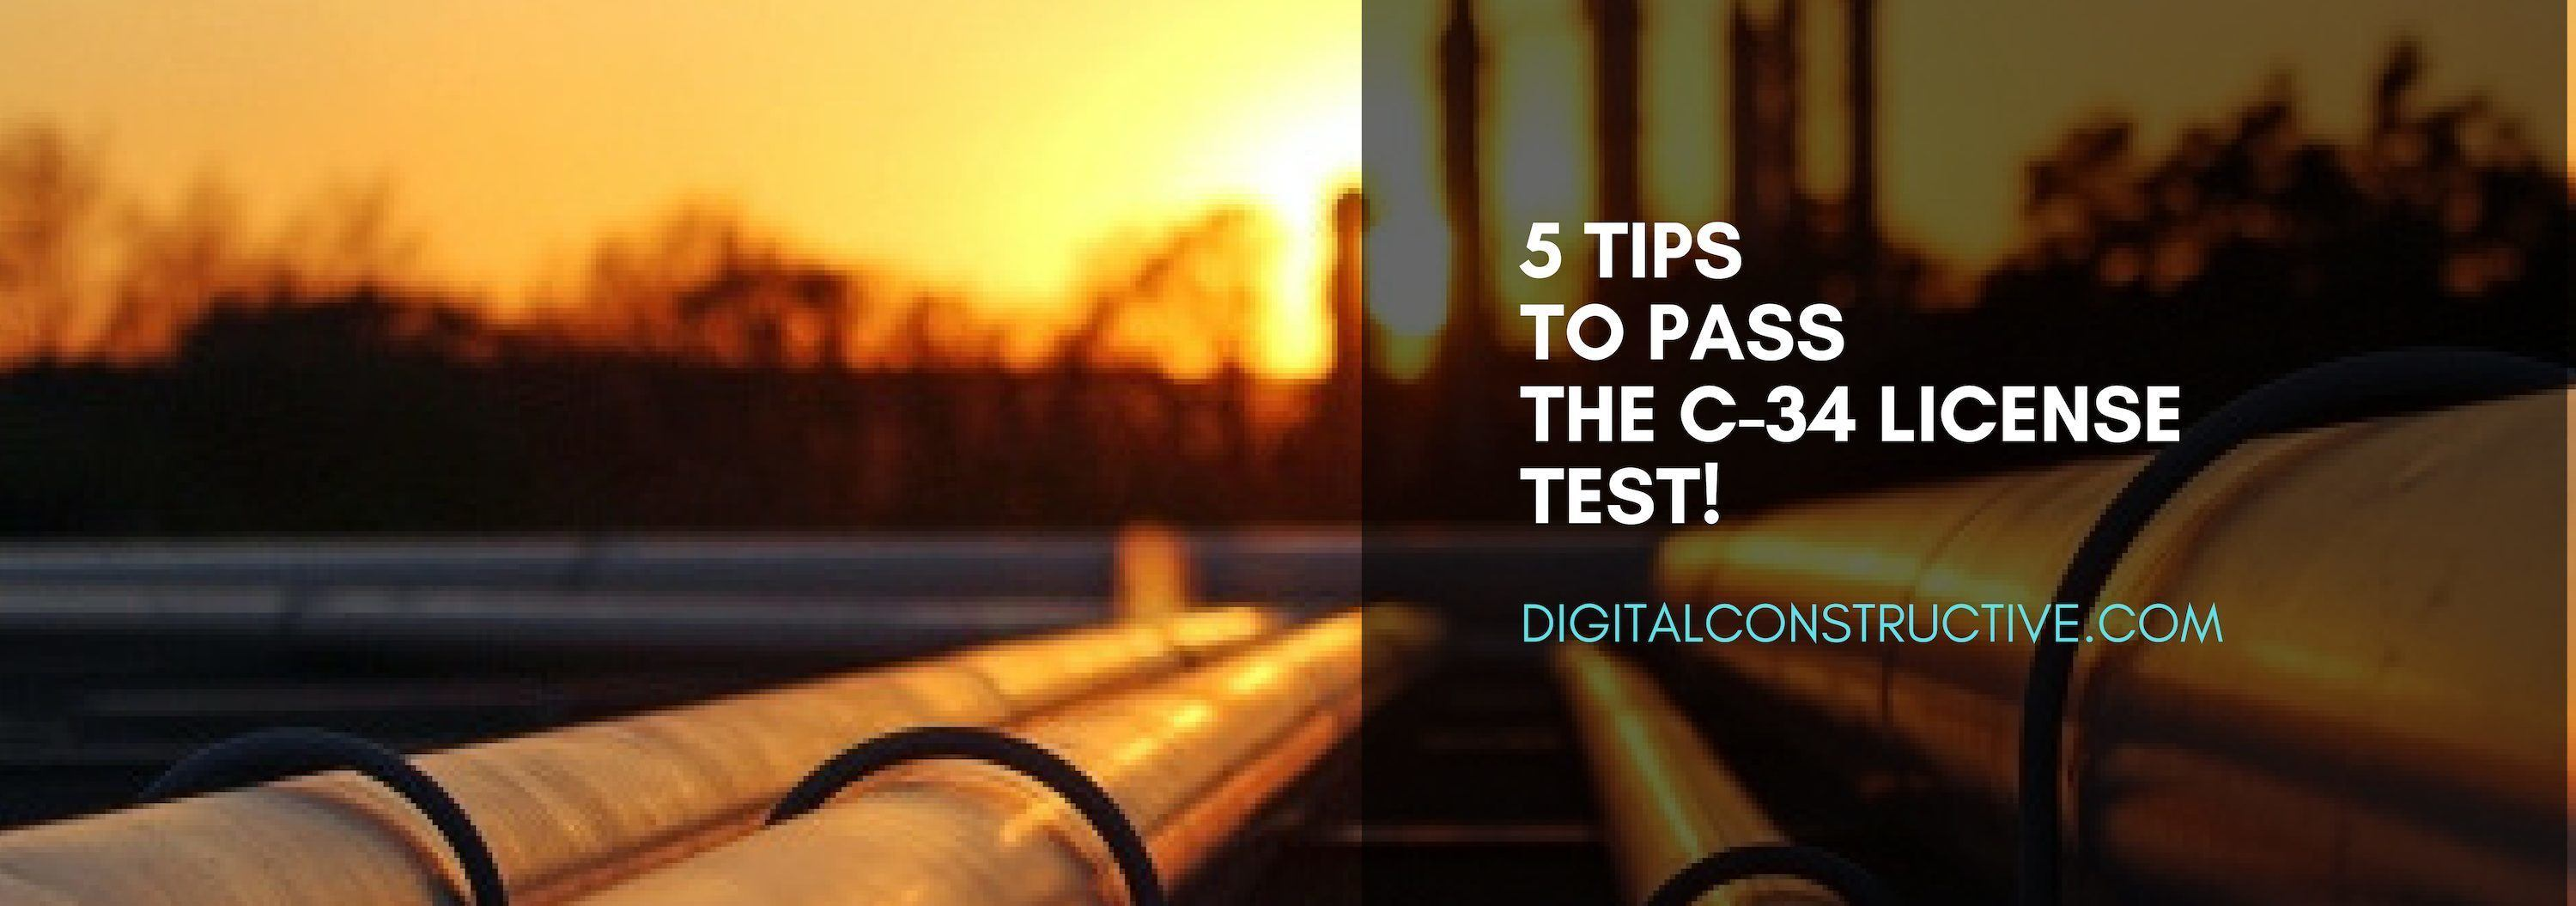 5 Tips To Pass The C-34 License Test! - Digital Constructive